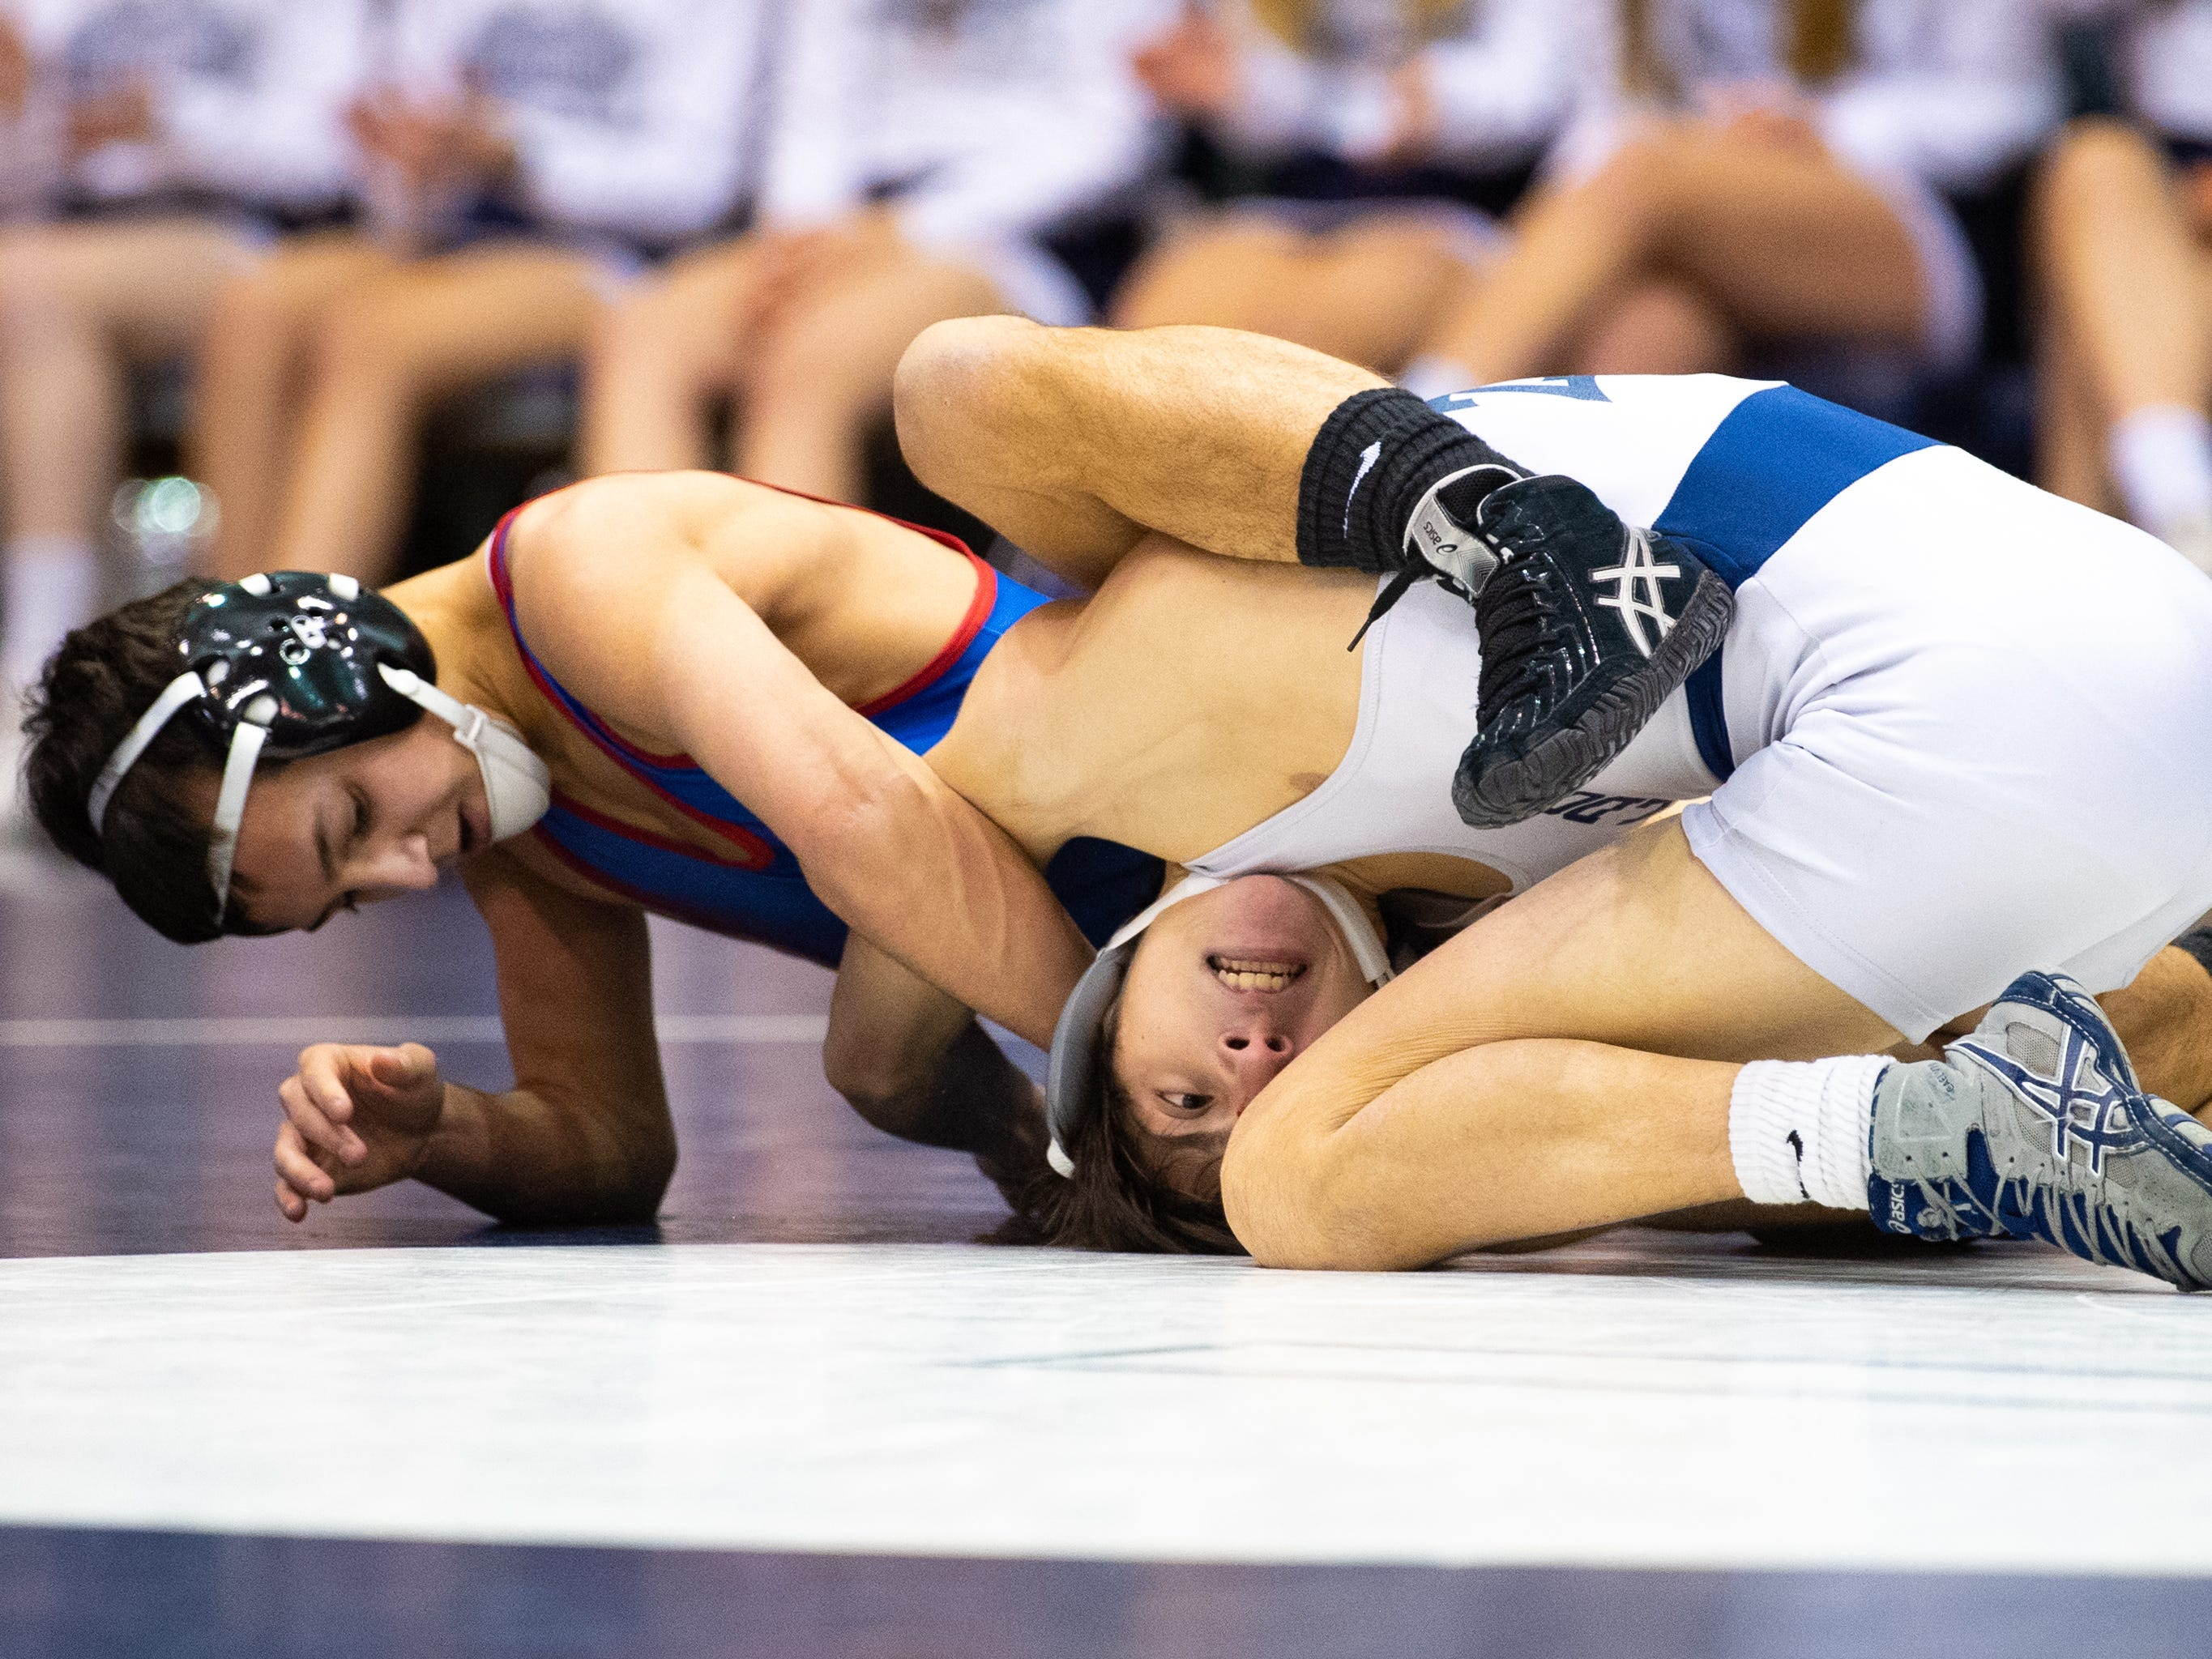 Sam Meyer of Spring Grove controls Dallastown's Adam Karlie during the wrestling dual meet at Dallastown Area High School, January 17, 2019. The Wildcats defeated the Rockets 46-24.